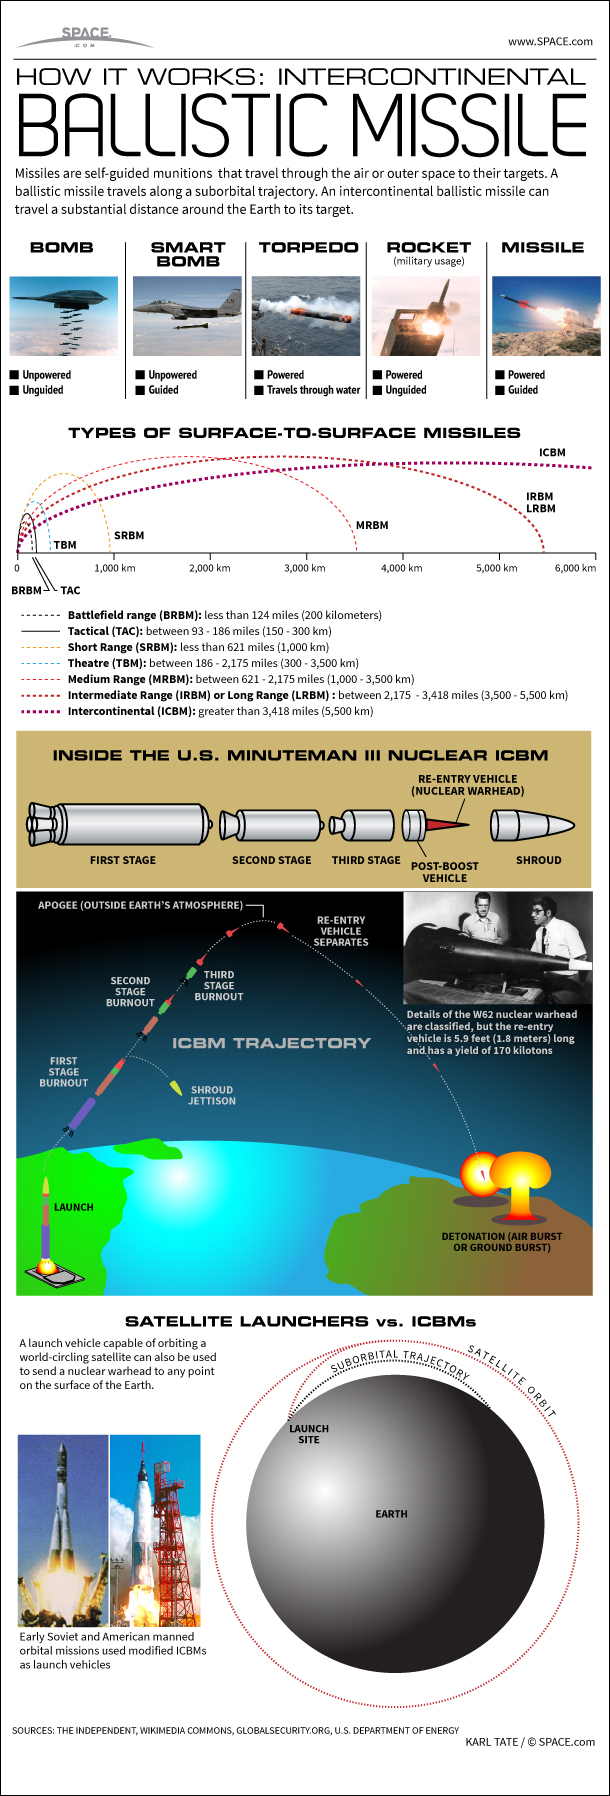 How an Intercontinental Ballistic Missile Works (Infographic)